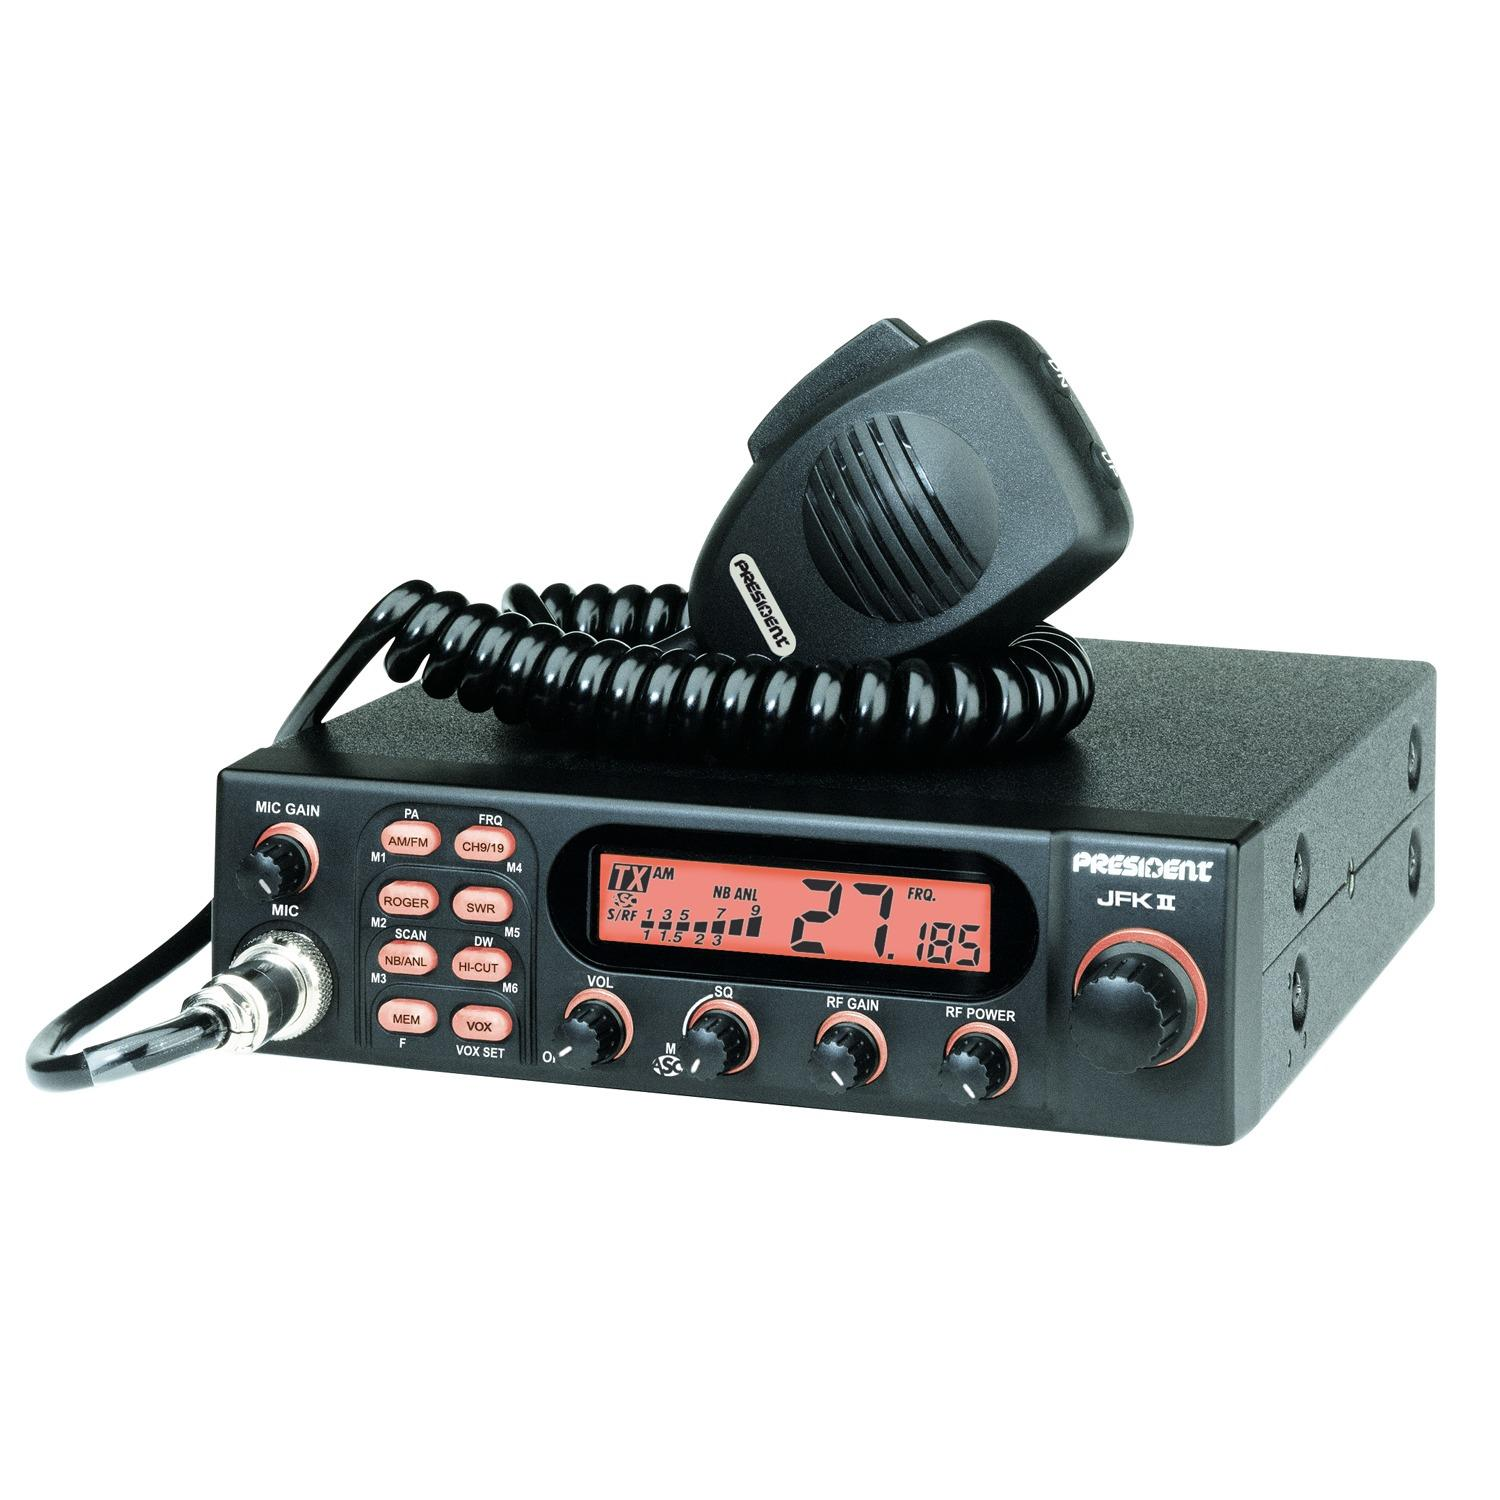 President JFK-2 Transceiver CB Mobile, AM/FM